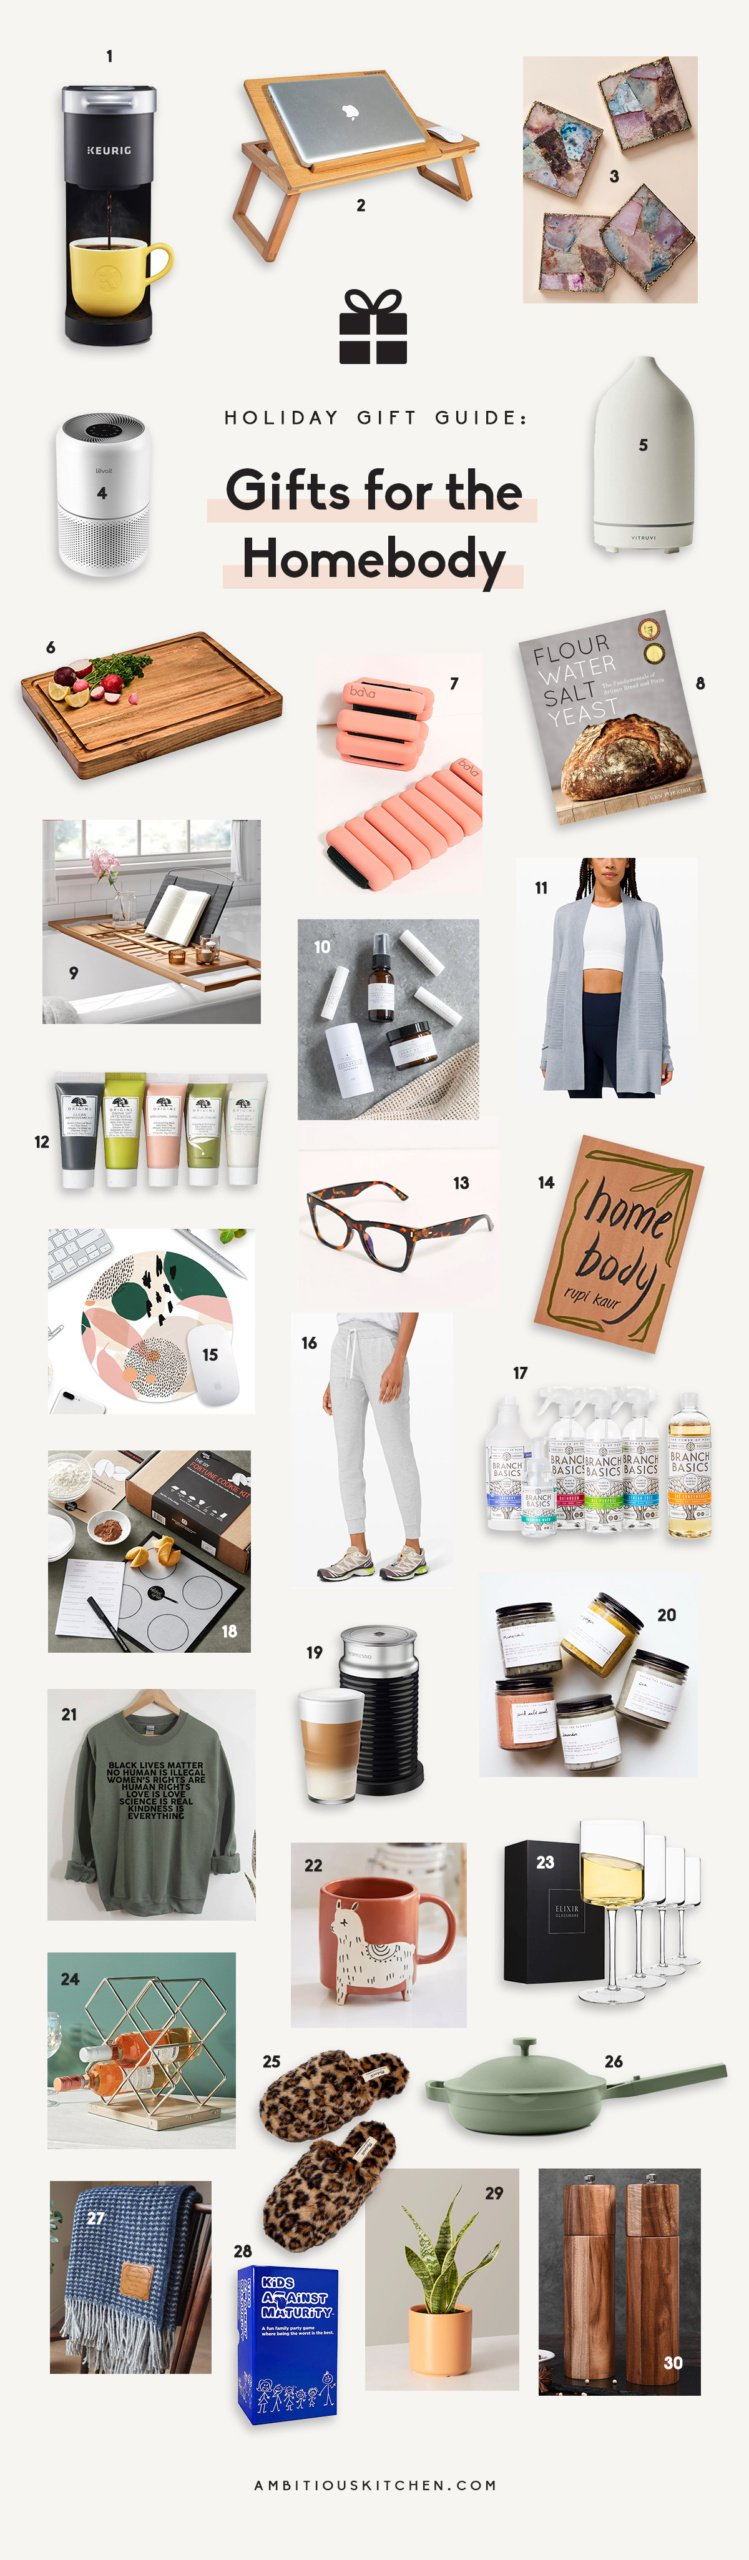 collage of gifts for the homebody